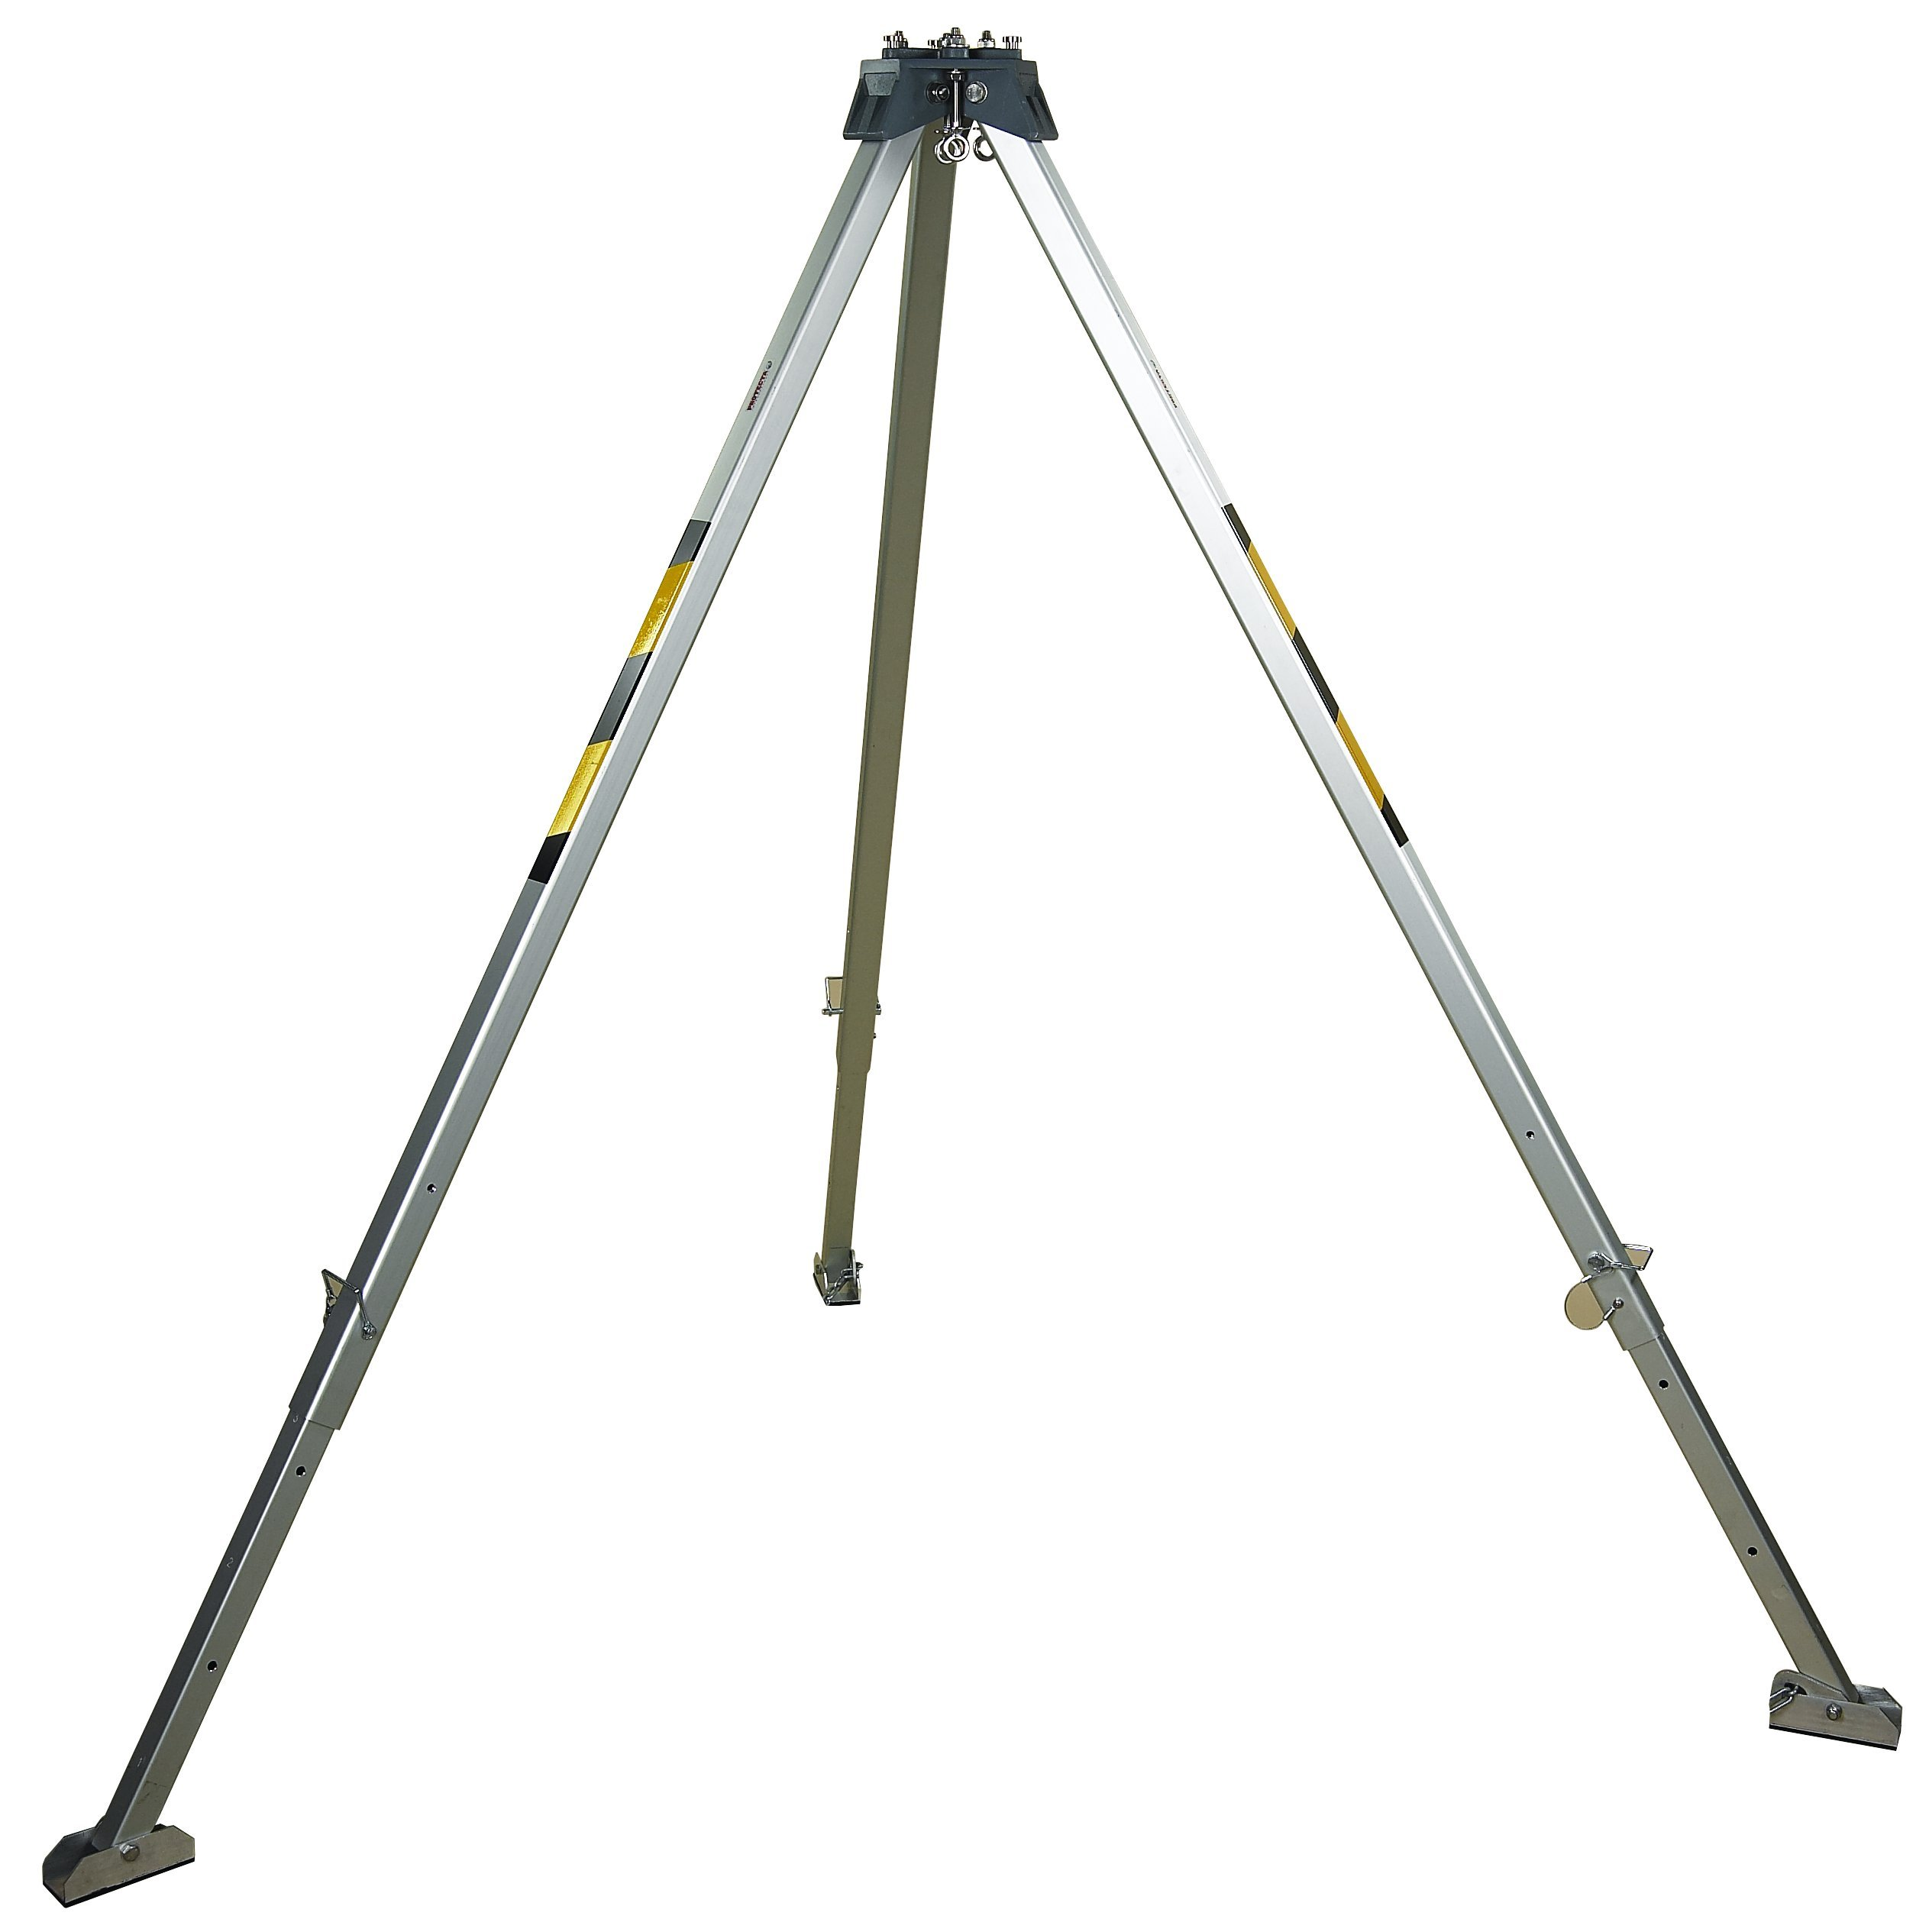 3M Protecta PRO AK105A Confined Space Aluminum Tripod, 8' with Adjustable Legs, Safety Chain, and Skid-Proof Feet, Silver by 3M Fall Protection Business (Image #1)